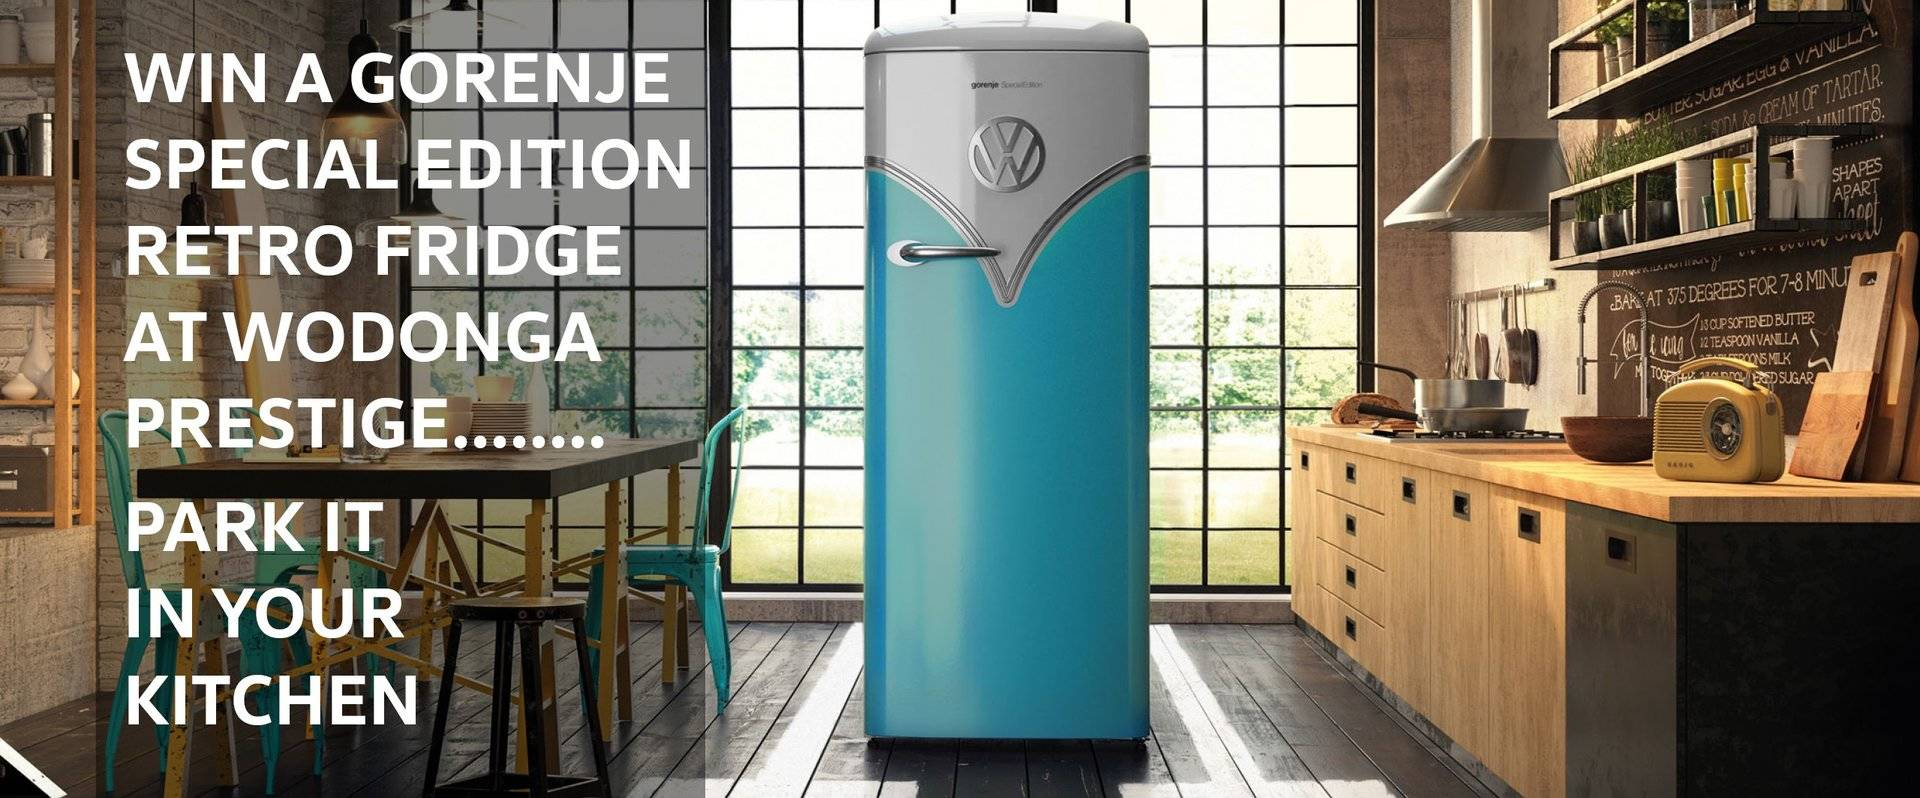 GORENJE SPECIAL EDITION RETRO FRIDGE